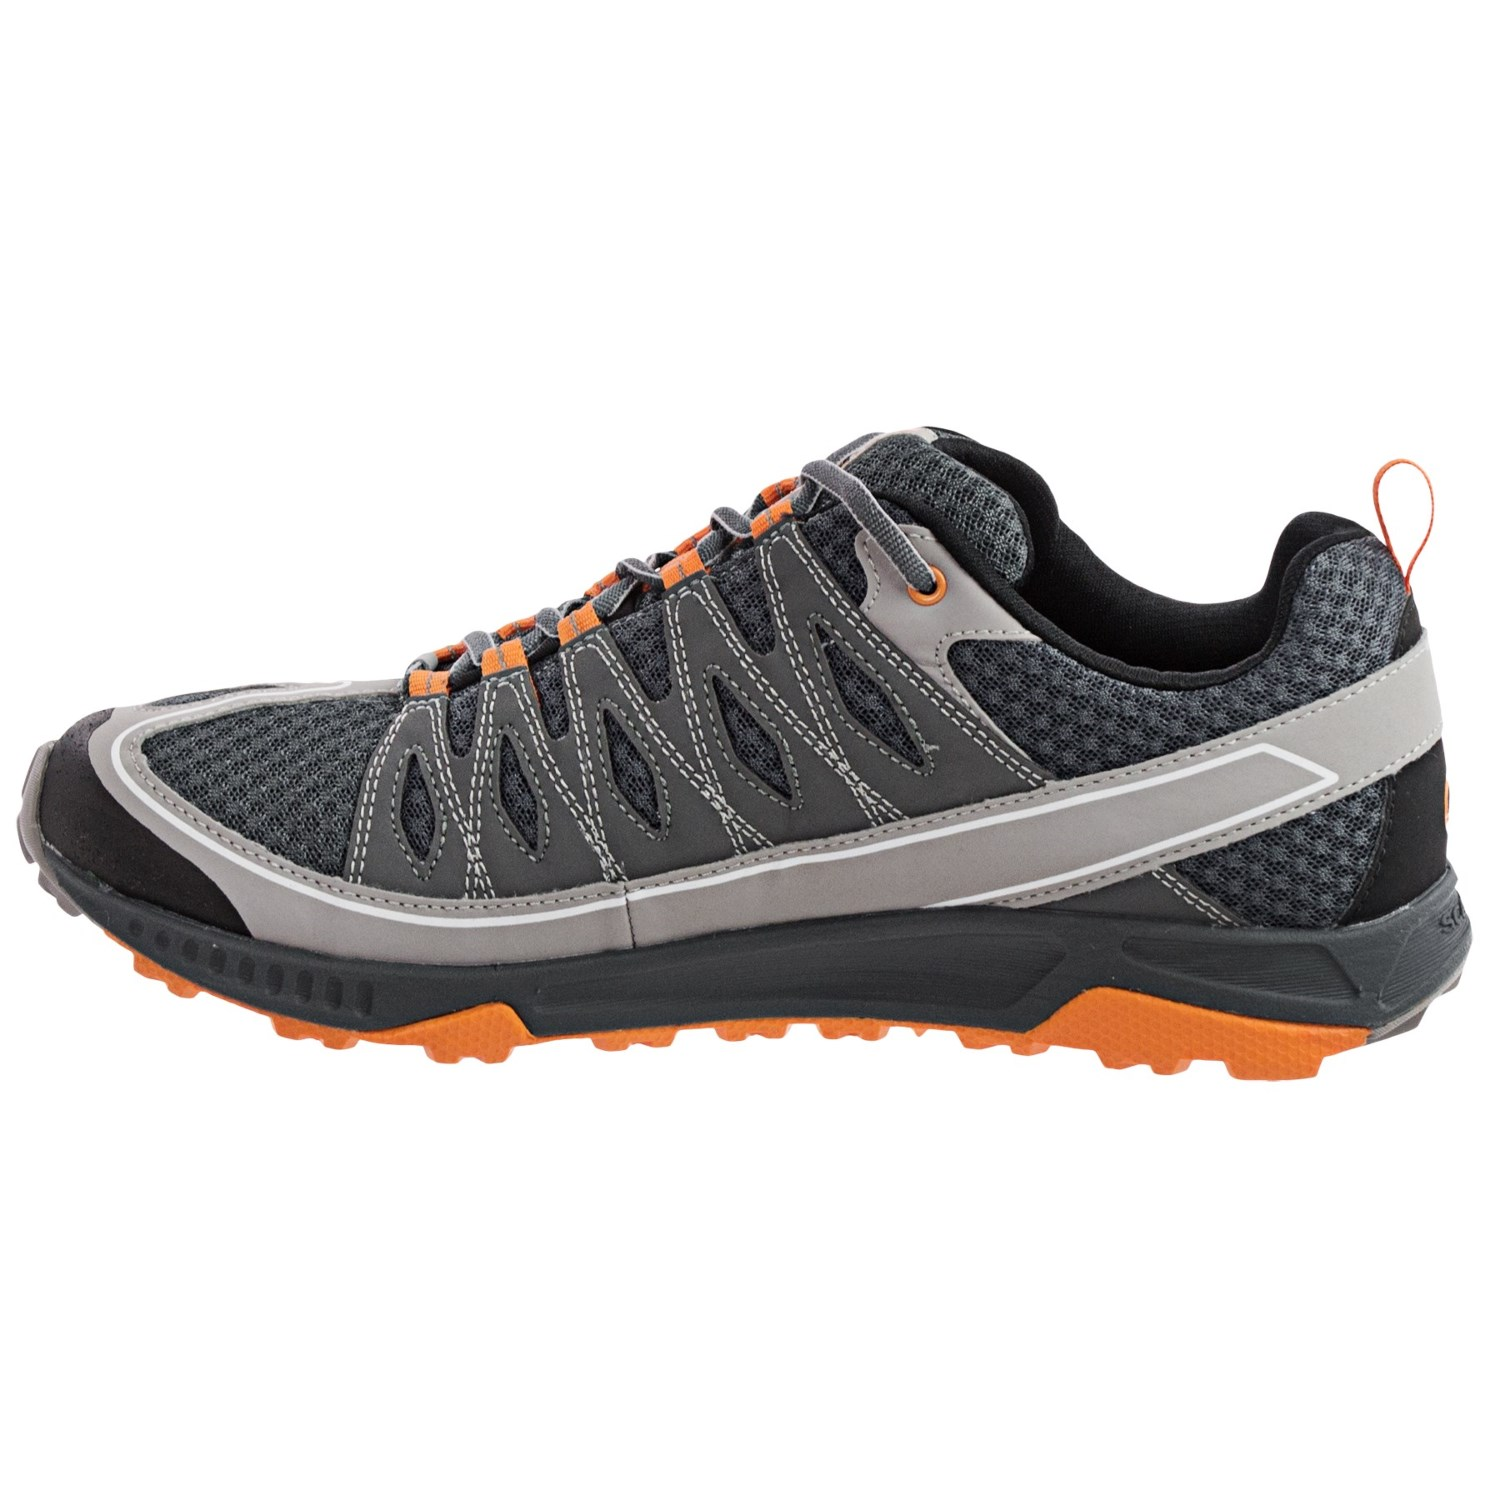 Scarpa Trail Running Shoes Review